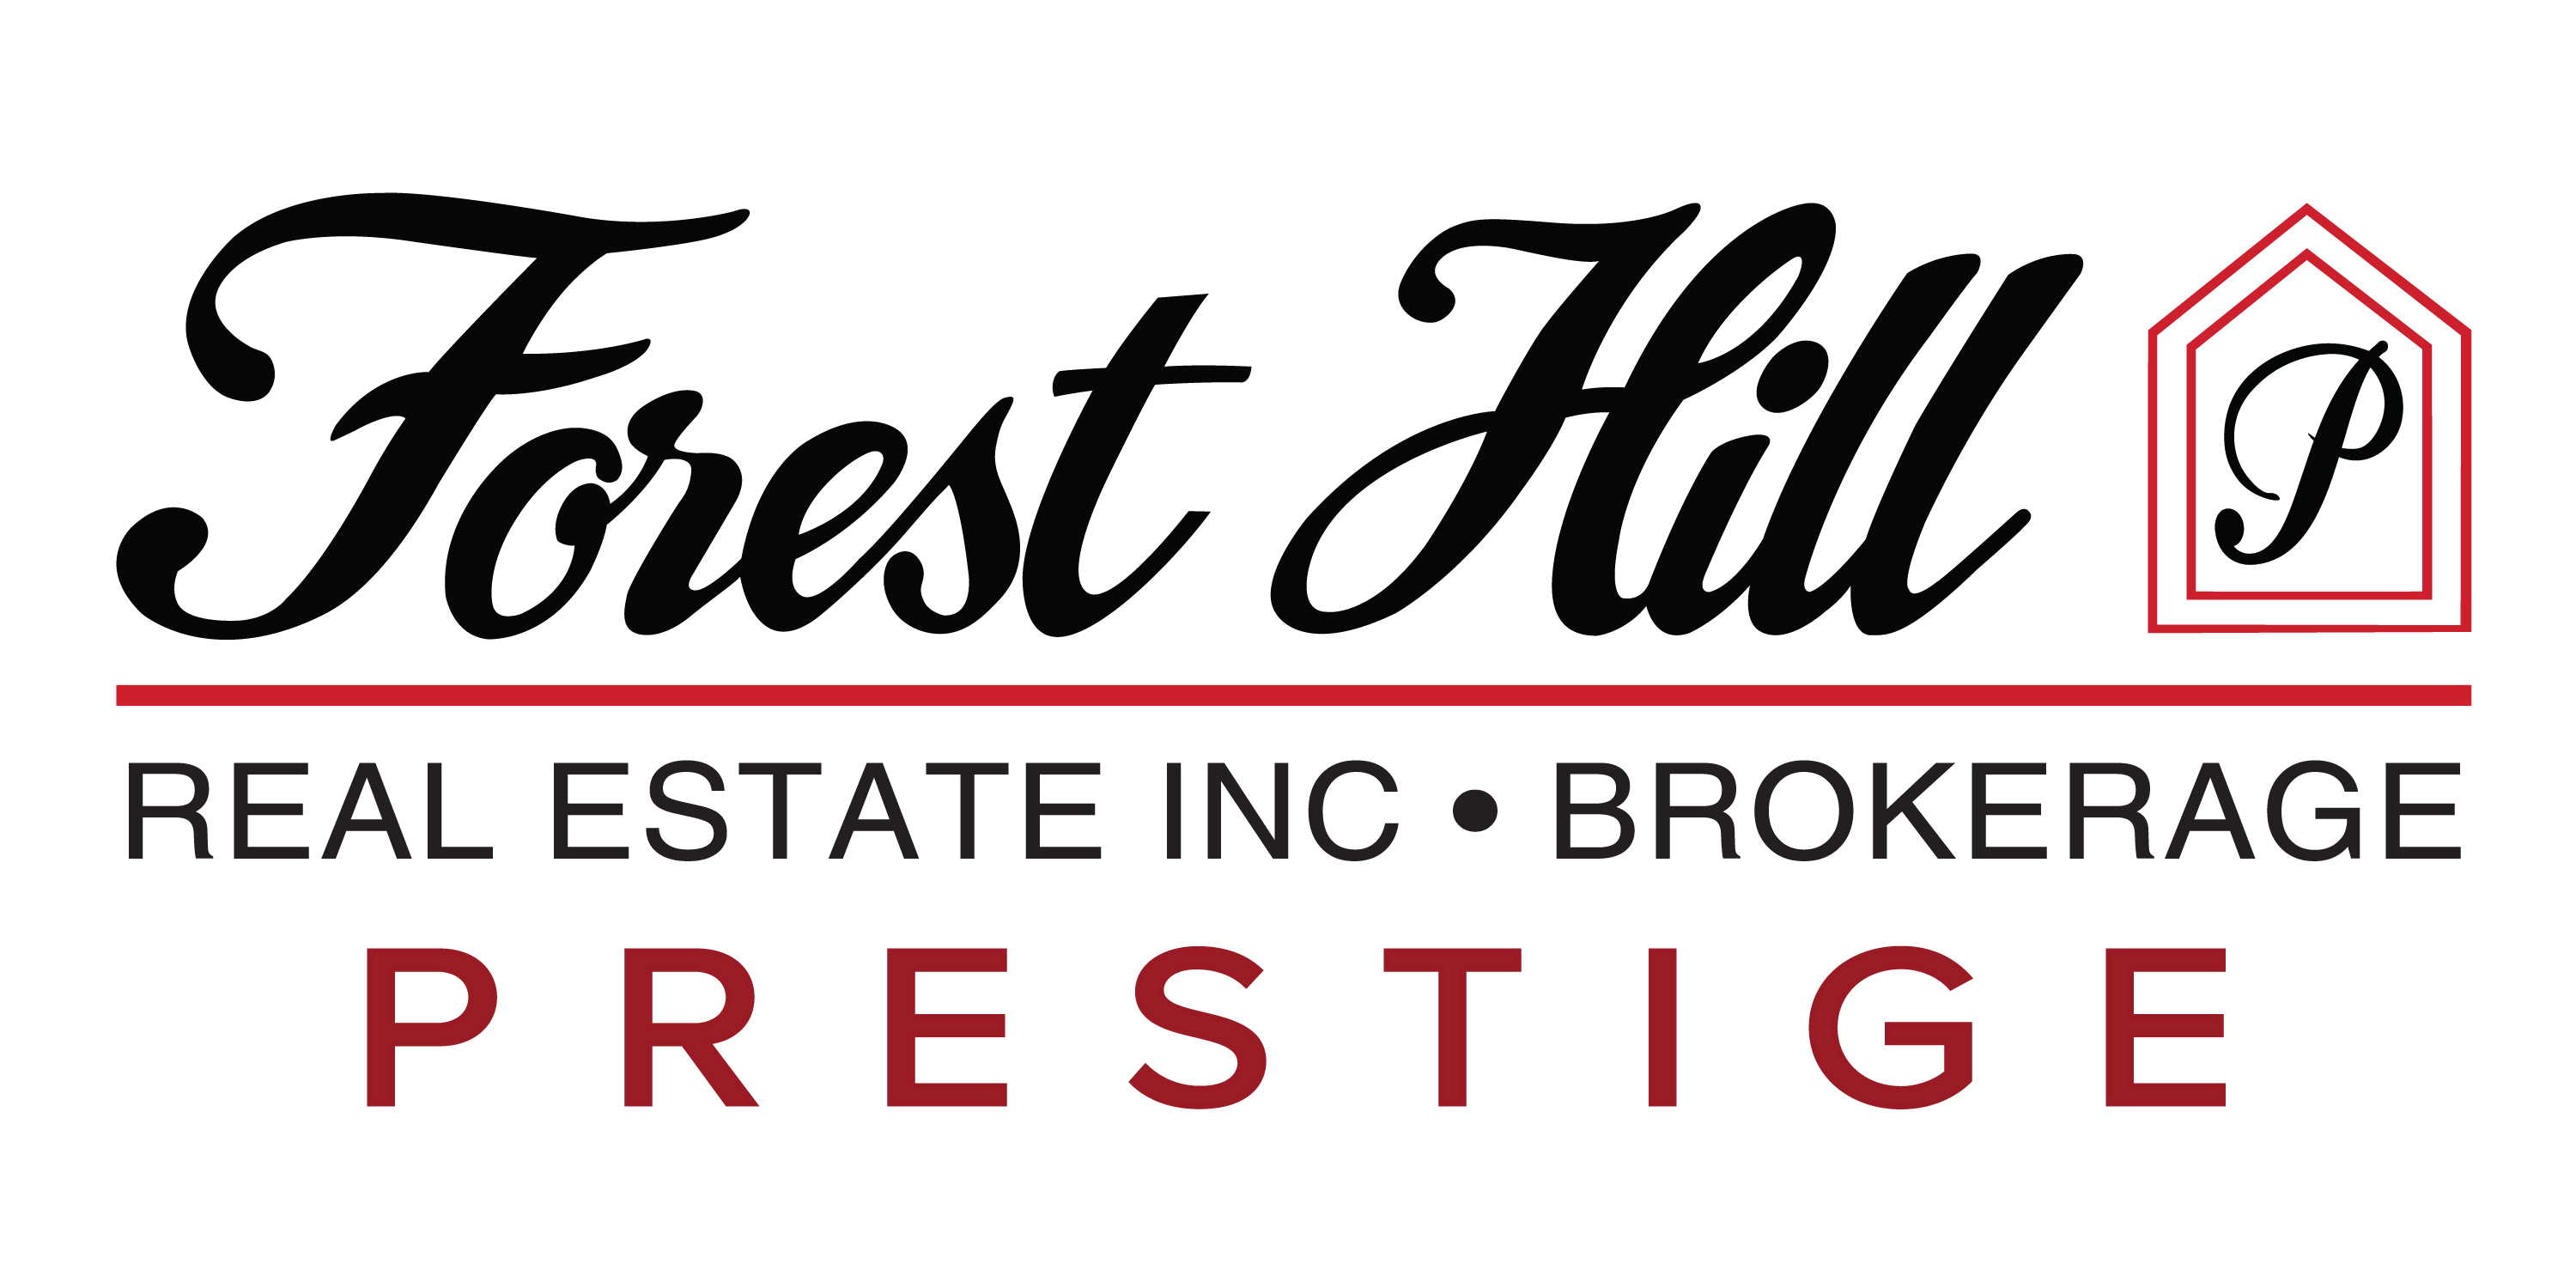 FOREST HILL REAL ESTATE INC., BROKERAGE - PRESTIGE